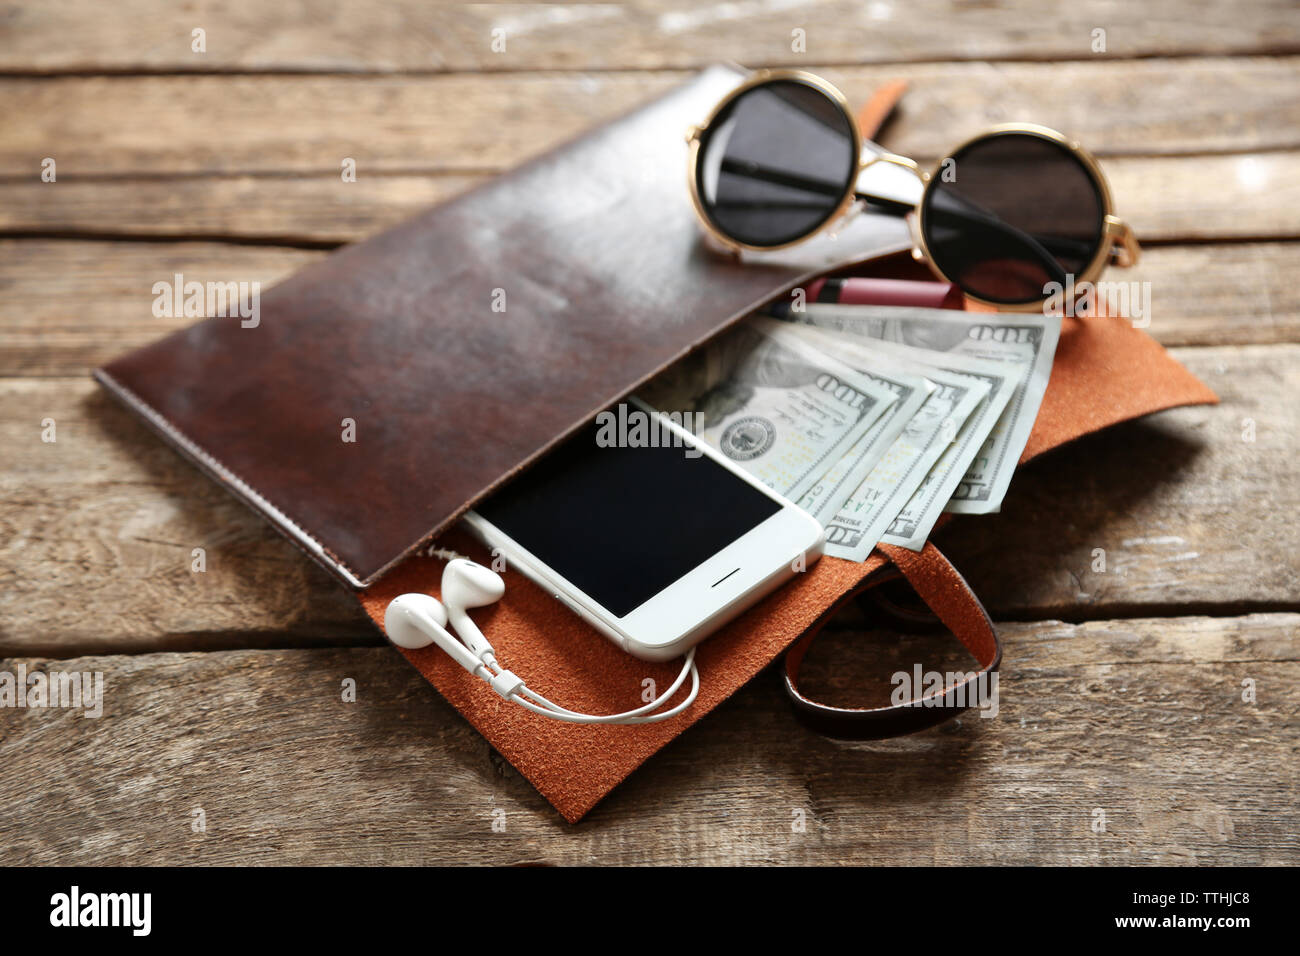 Leather purse with mobile phone, glasses and dollar banknotes on wooden table - Stock Image